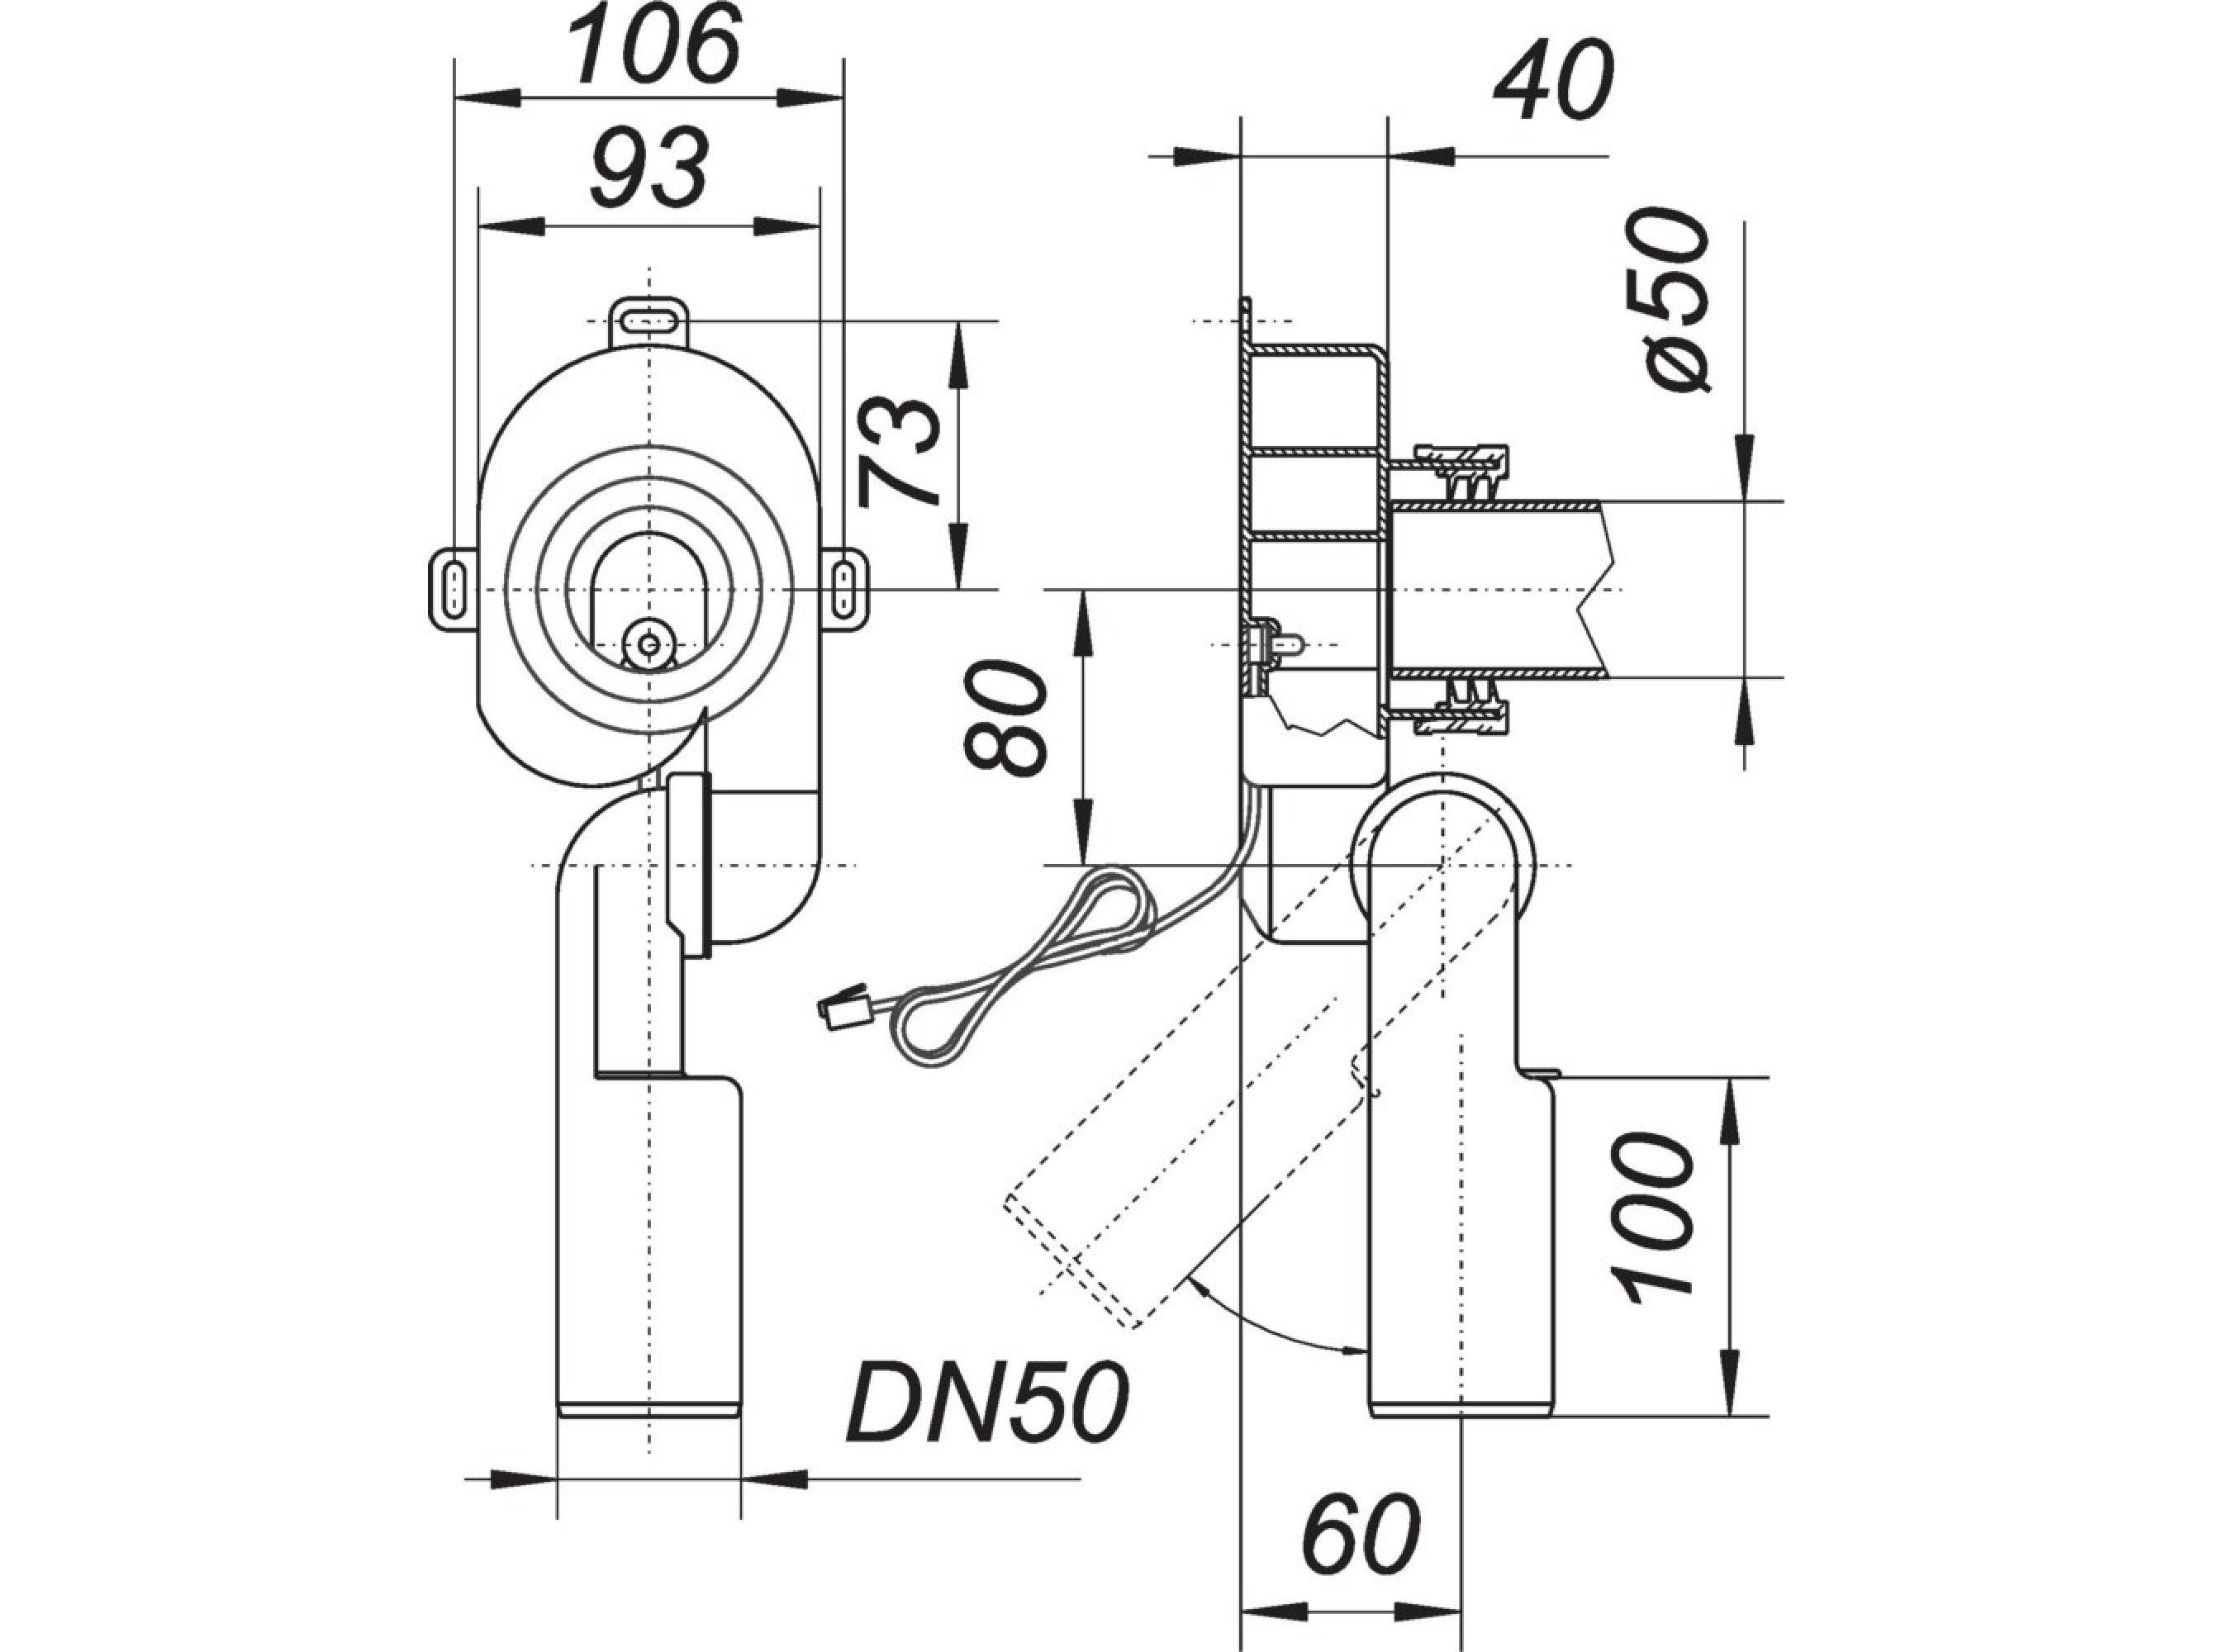 St 400 Kickdown Switch Wiring Diagram